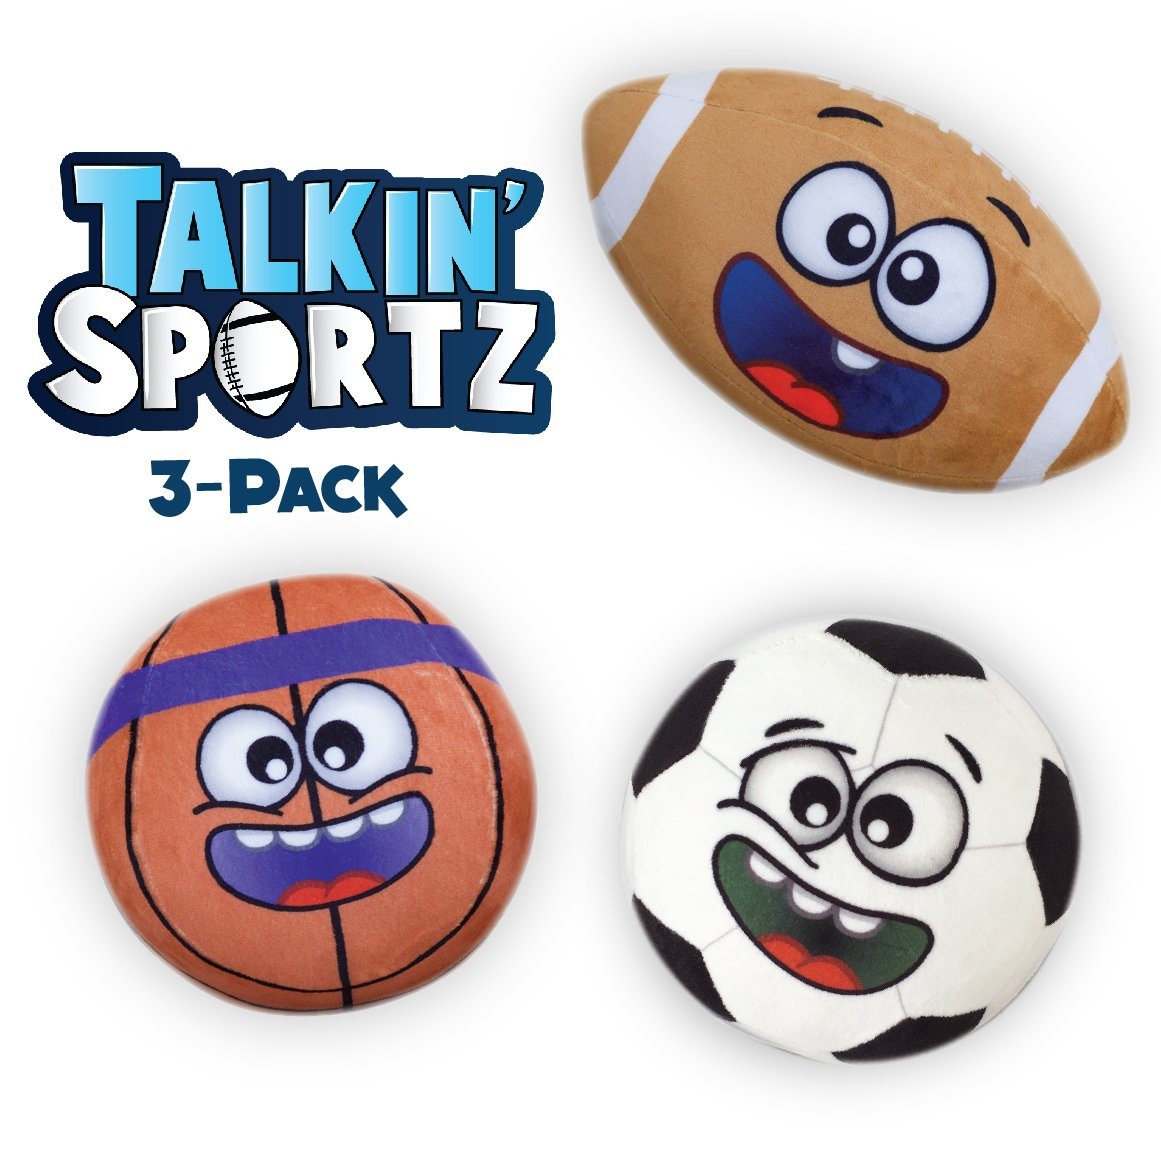 Talkin' Sports Hilariously Interactive Toy Soccer Ball with Music and Sound FX For Kids and Toddlers By Move2Play TS104